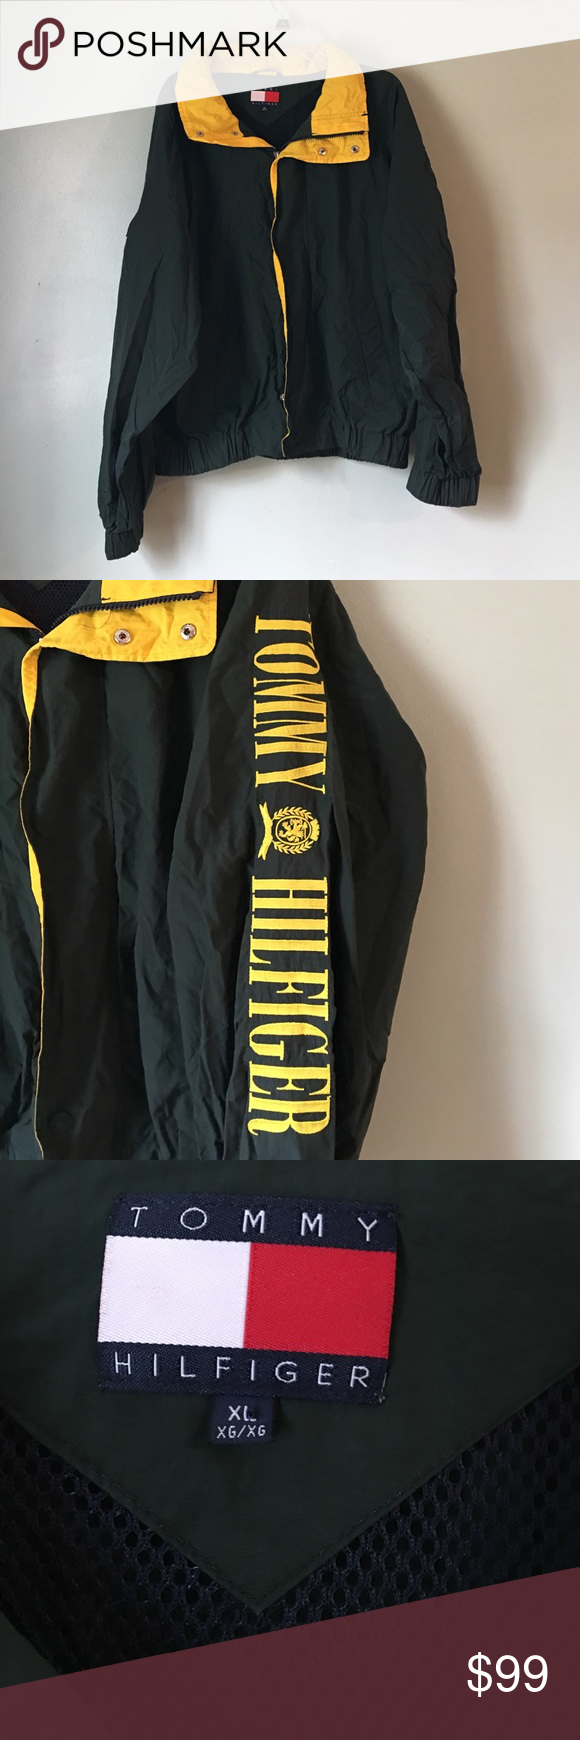 Vintage Tommy Hilfiger Windbreaker. XL Vintage Tommy Hilfiger Mens Xlarge Green Sailing Jacket , Yellow Hood , Yellow Embroidered Letters. Jacket is in Mint condition. Still looks New with no rip or stains. Tommy Hilfiger Jackets & Coats Windbreakers